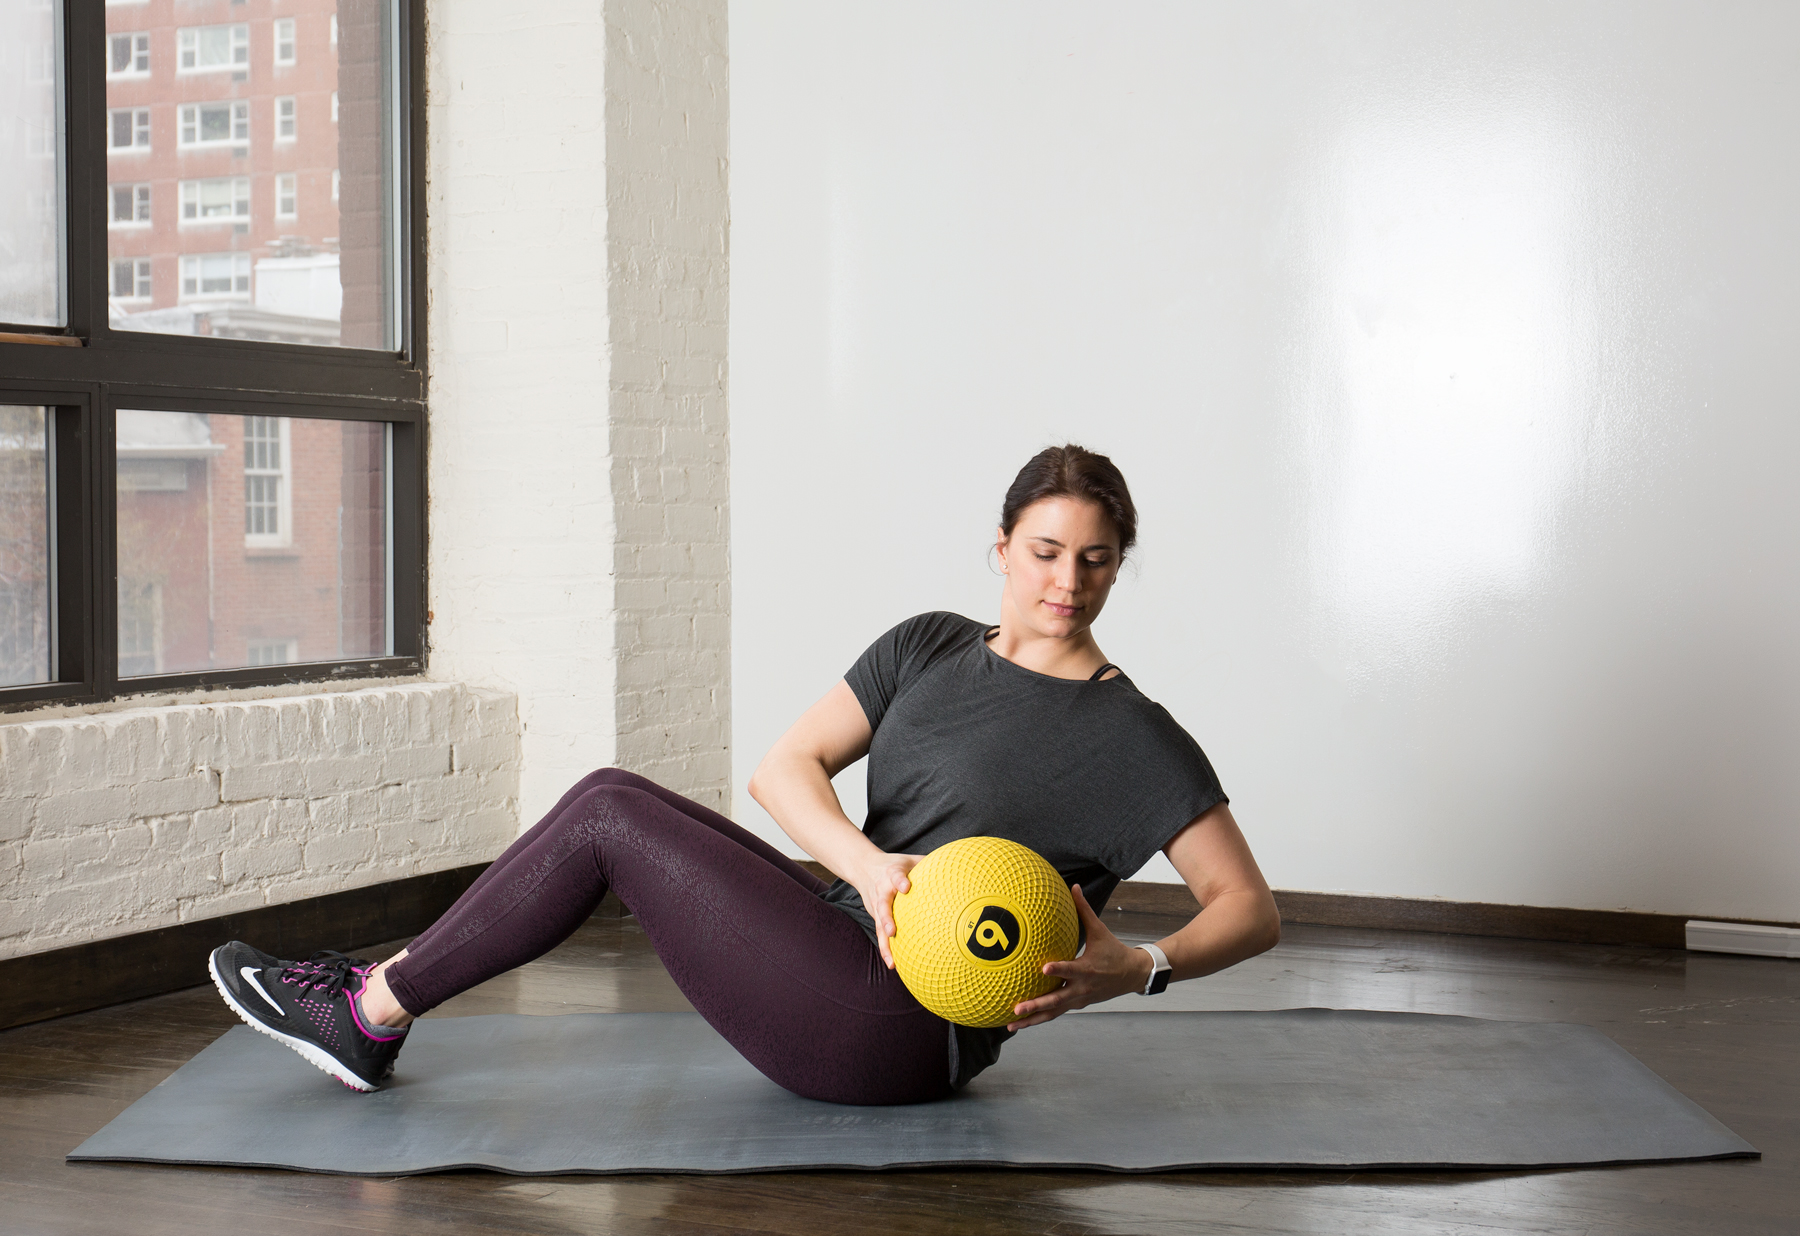 Core Exercises  10 Medicine Ball Moves for Strong Abs  89b448acb31f